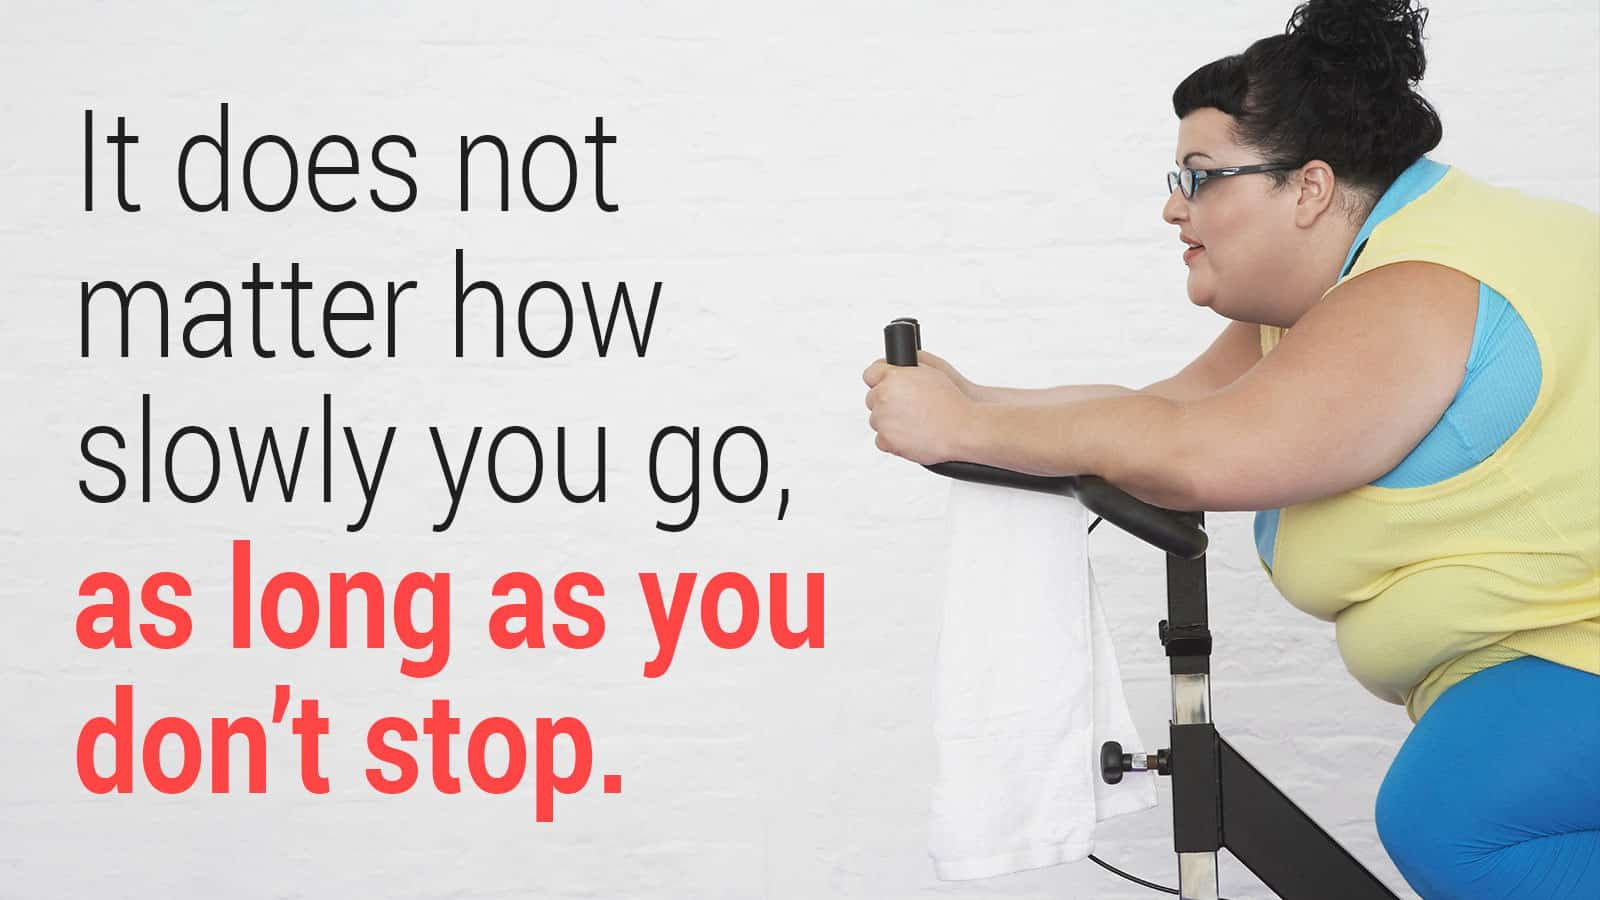 15 Motivational Quotes About Weight Loss To Never Forget 5 Min Read